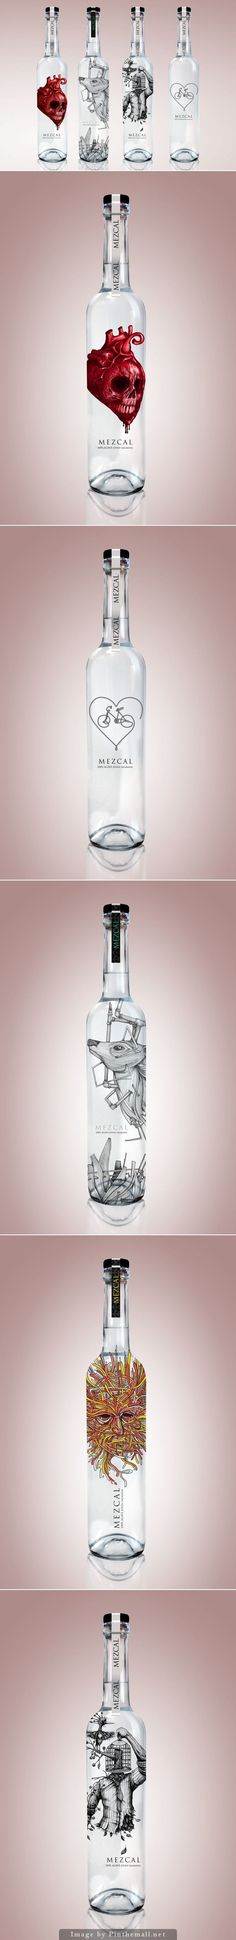 Mezcal Packaging on Behance | Fivestar Branding – Design and Branding Agency & Inspiration Gallery